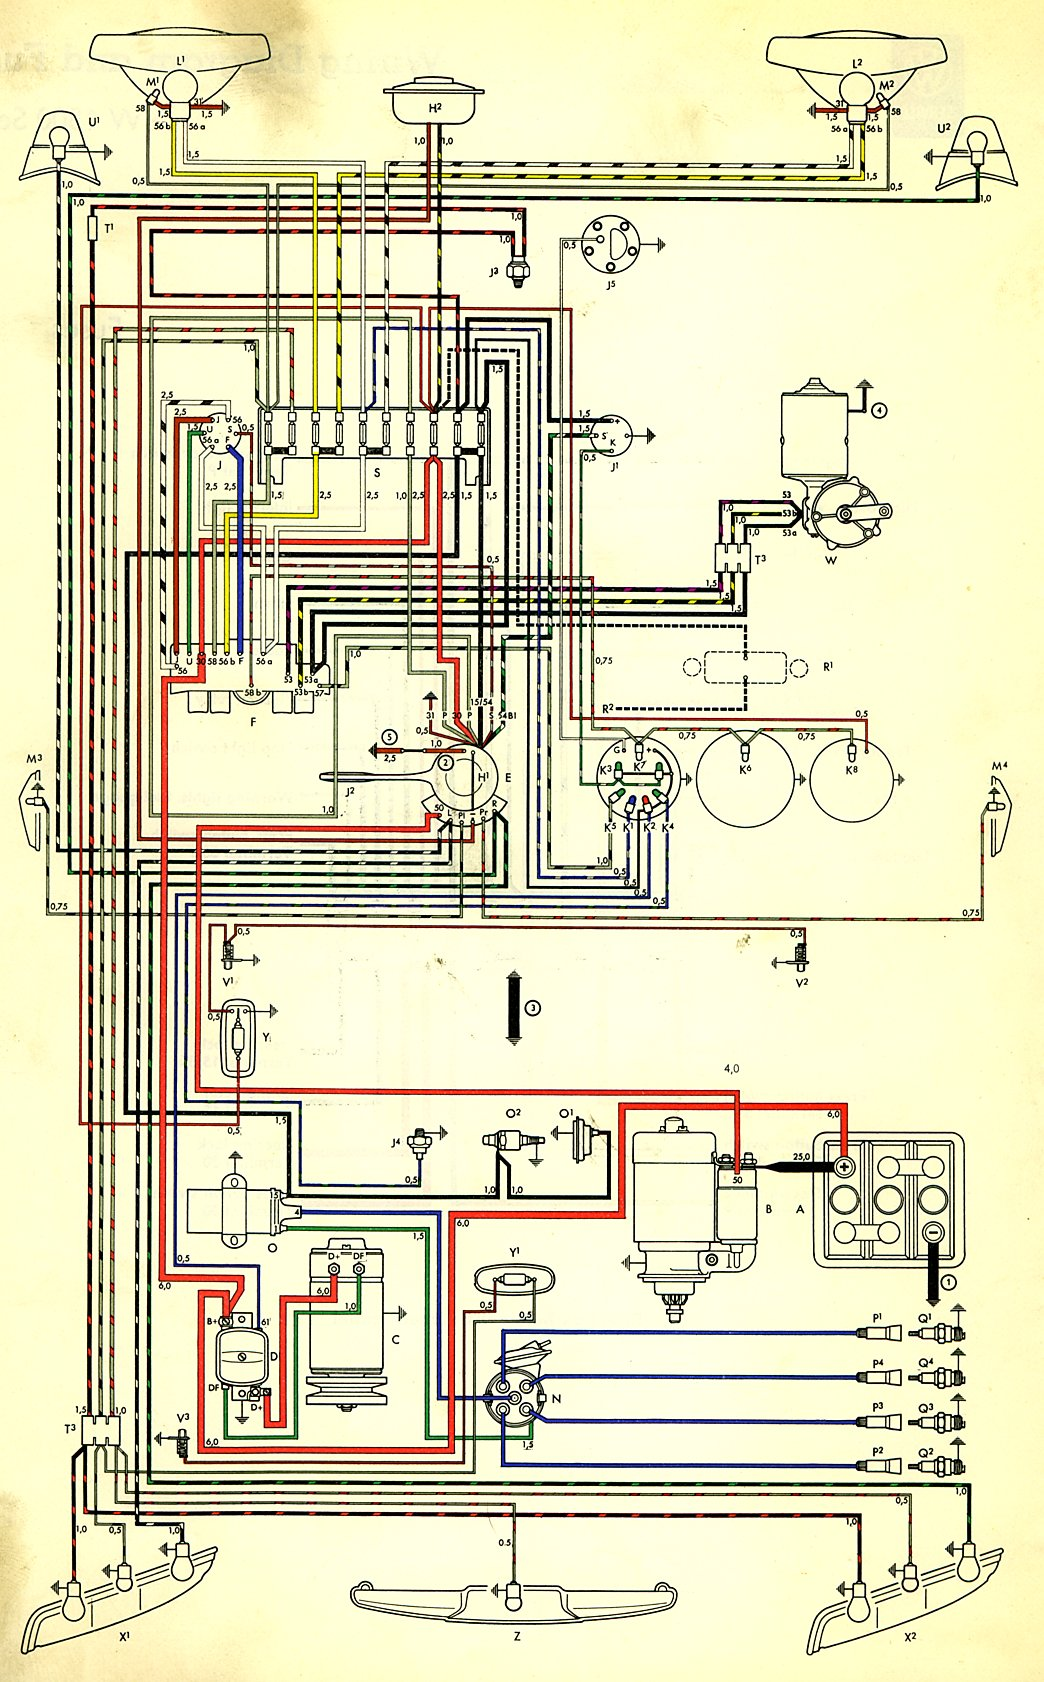 Type 3 Wiring Diagrams Understanding Electrical Line Free Download Diagram